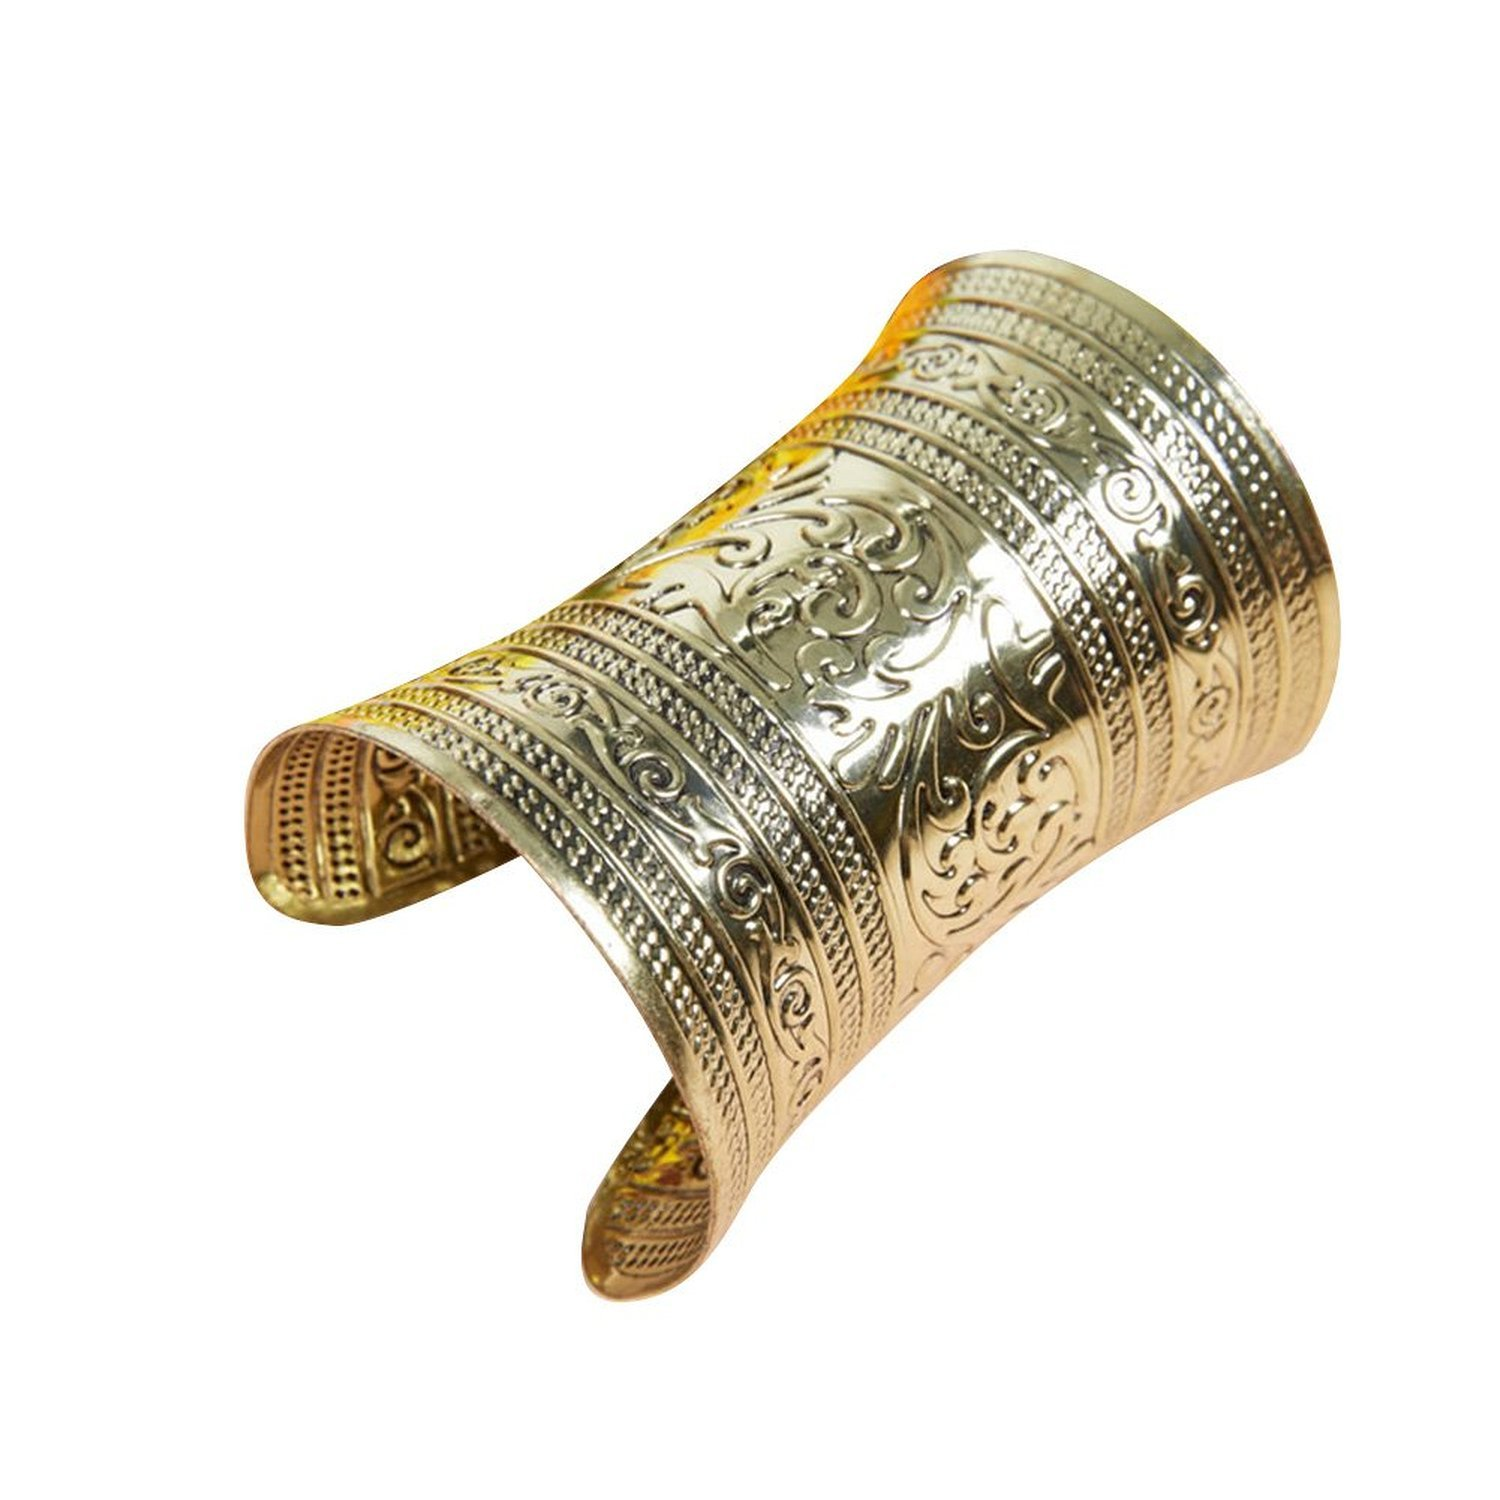 AvaCostume Bronze Tribal Gold Cuff Bracelet for Cosplay or Belly Dance 2PCS,2 Psc